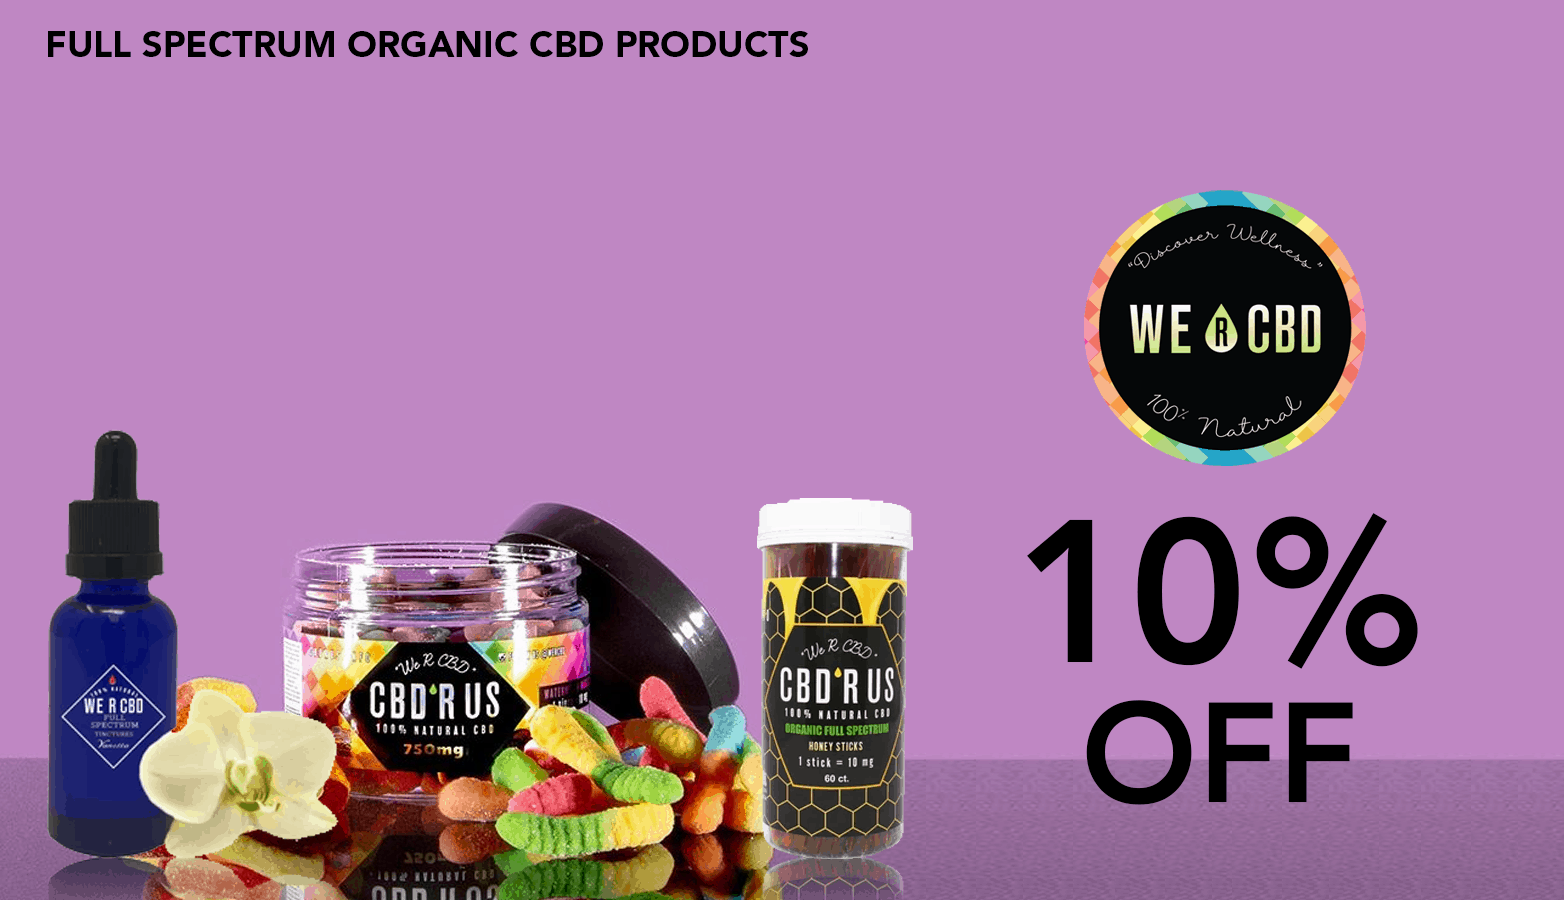 We R CBD Coupon Code discounts promos save on cannabis online Website